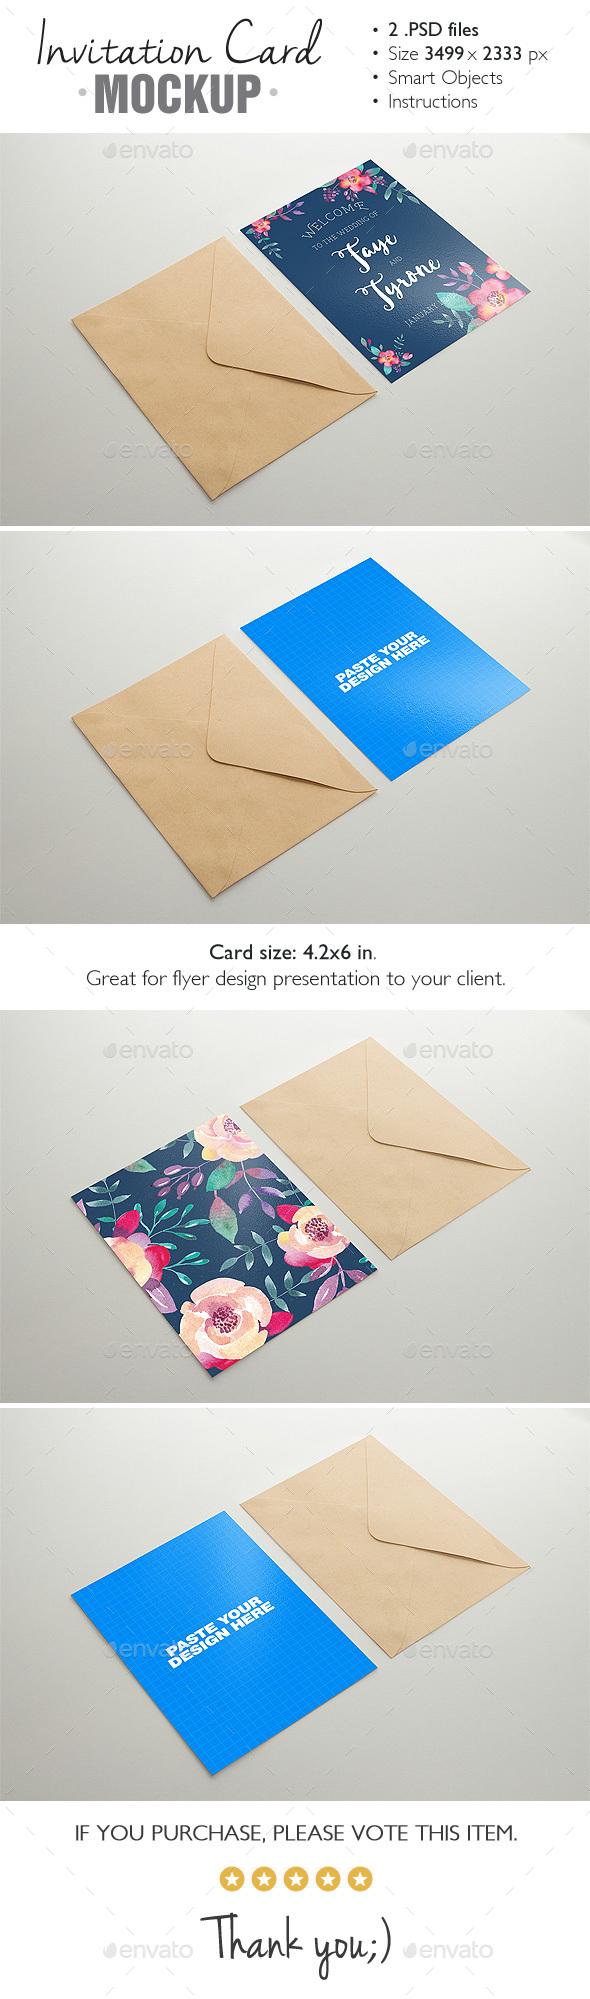 Invitation Card Mockup v.3 - Product Mock-Ups Graphics